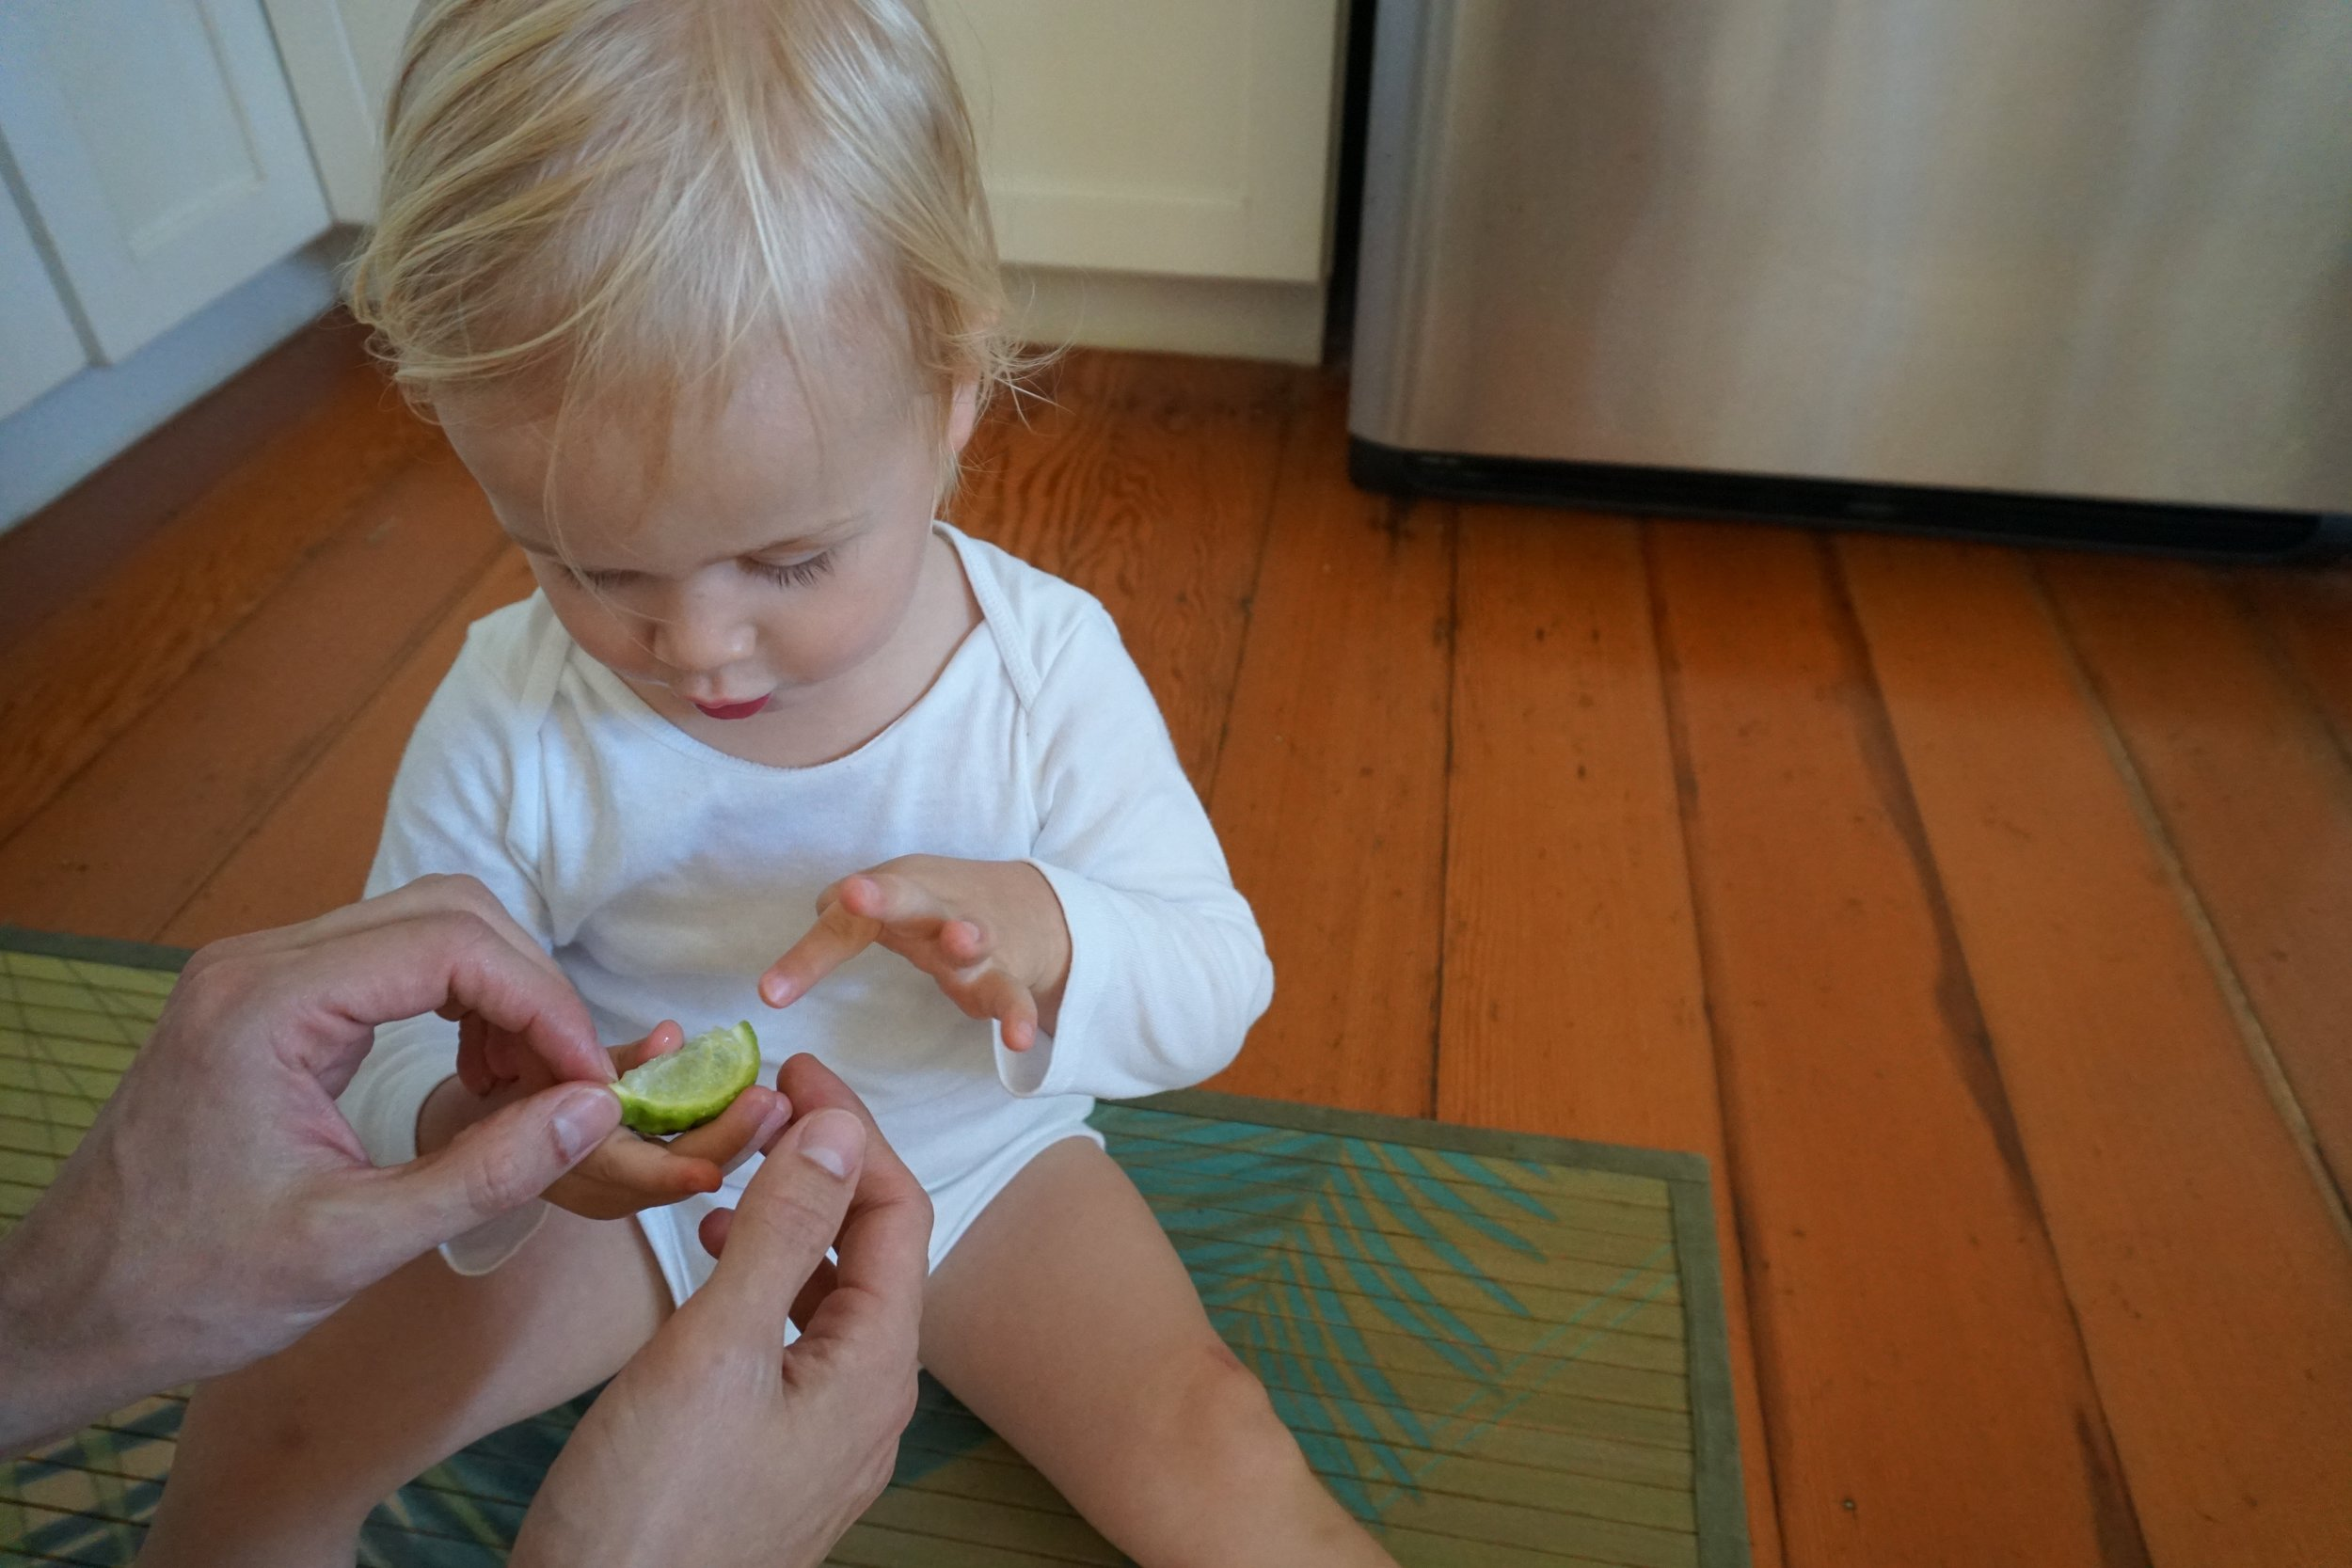 Checking out the just-picked lime plucked from a tree outside our cottage